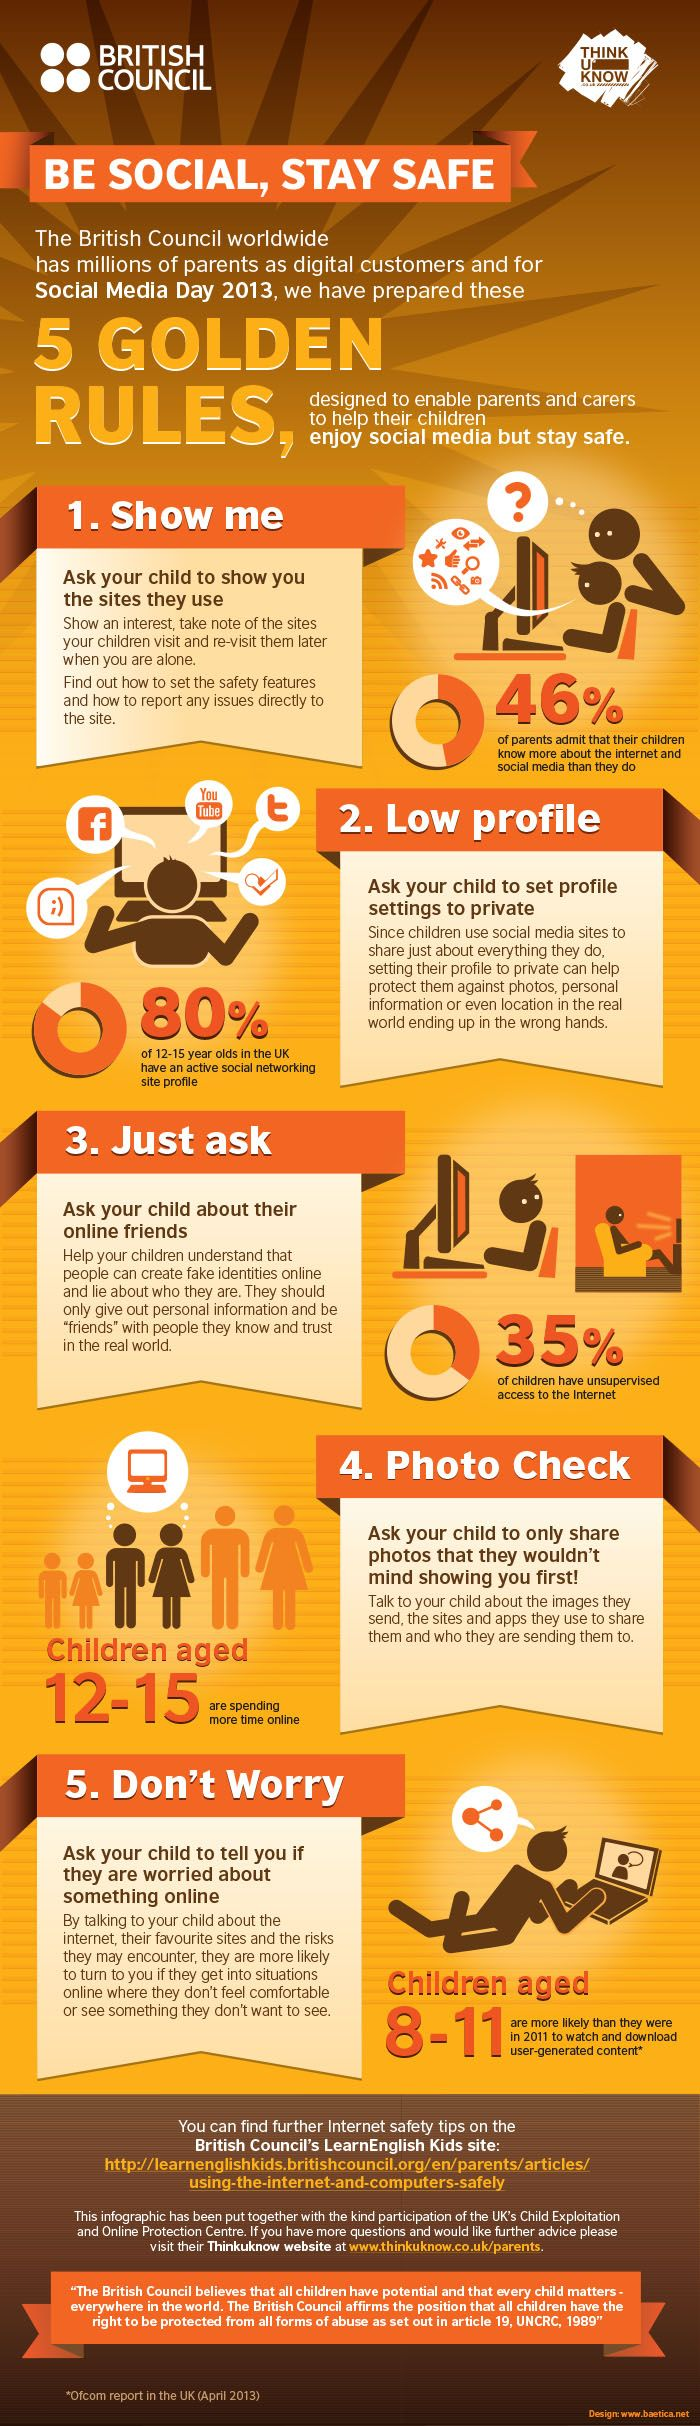 5 Golden Rules to Keep Children Safe on Social Media